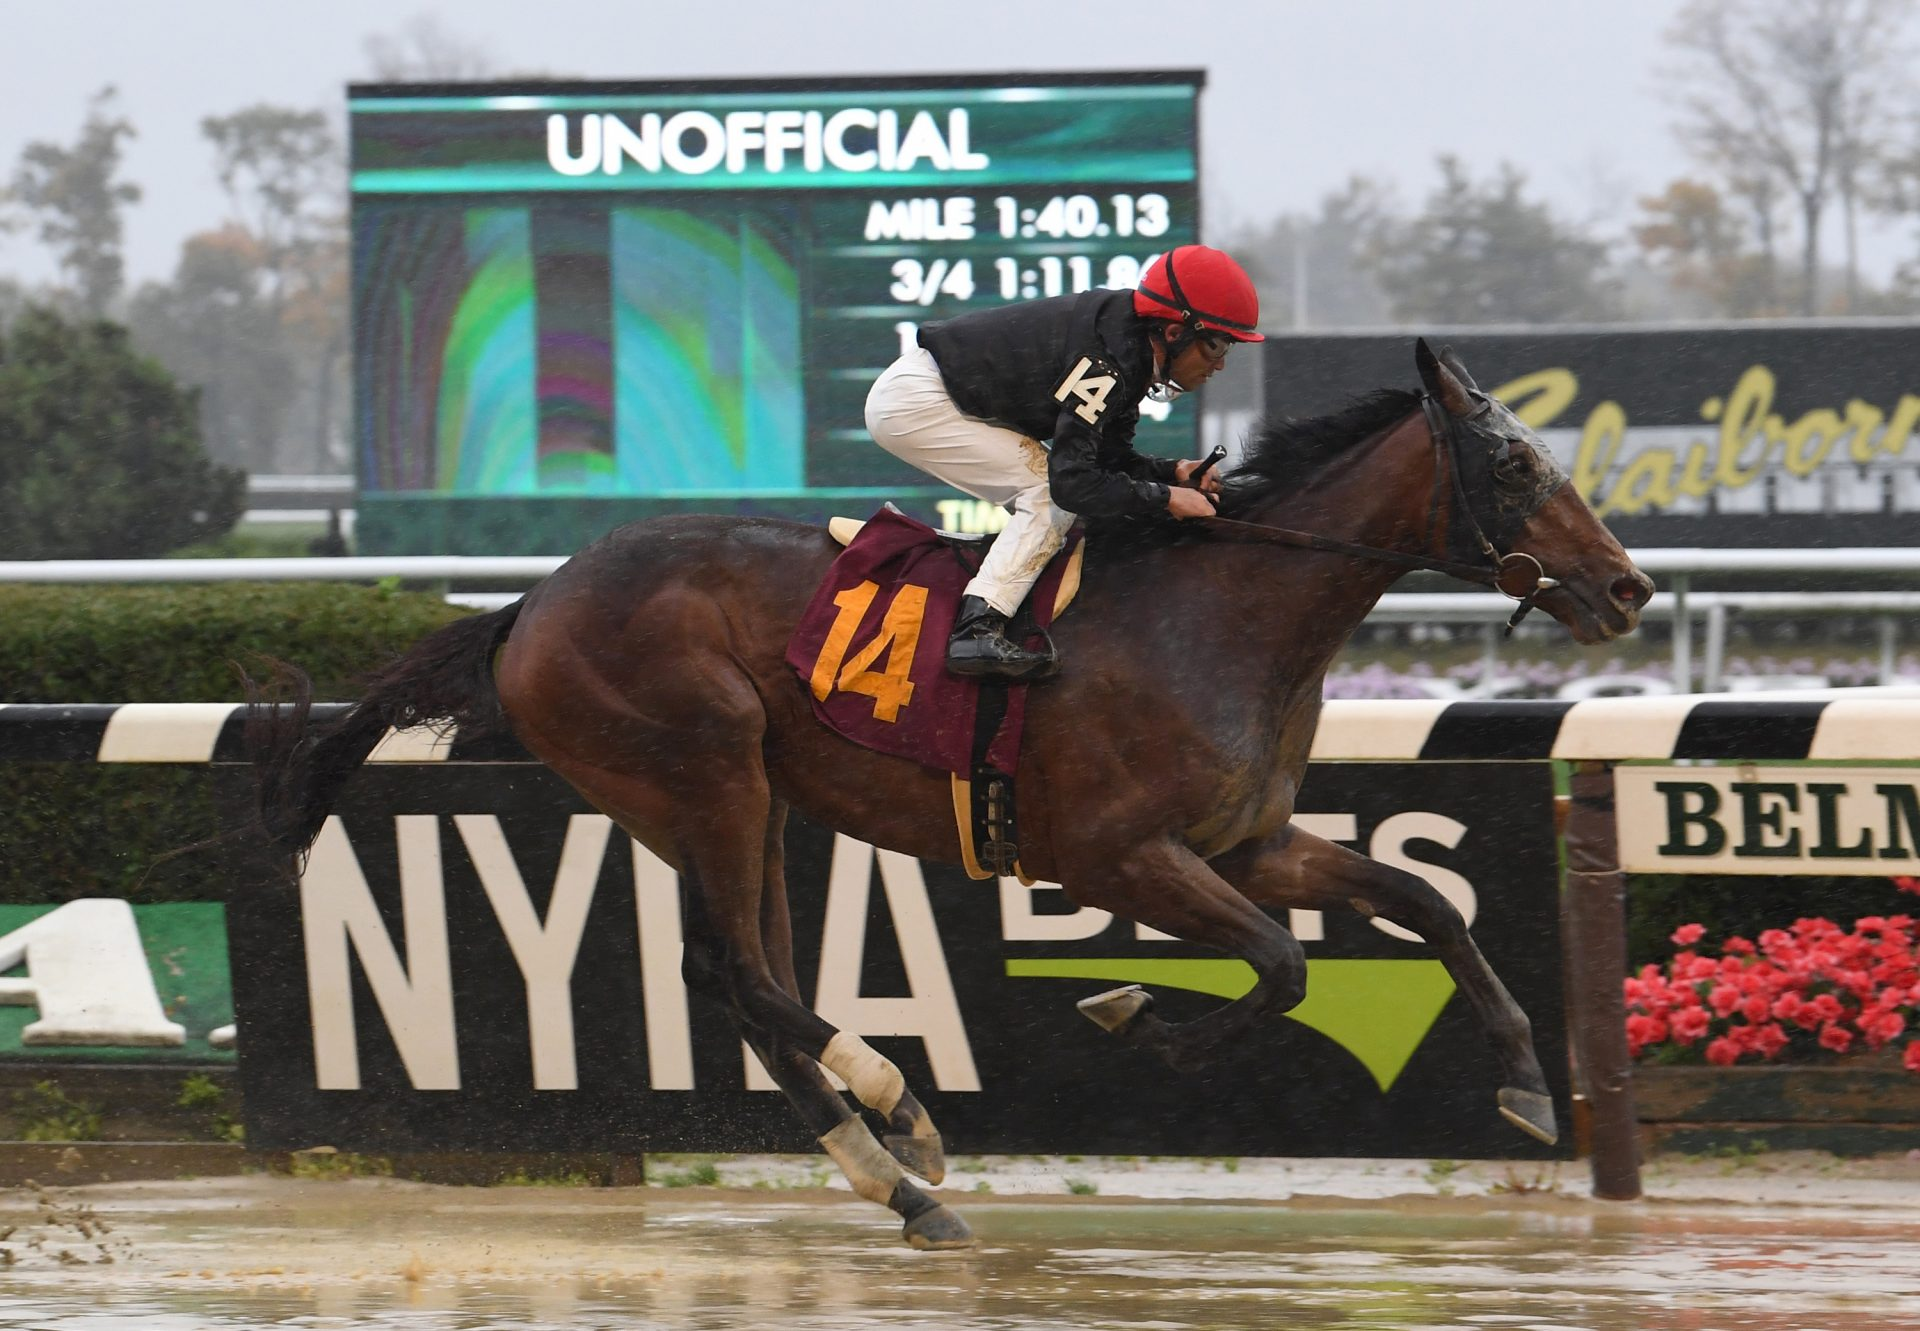 Amends (Uncle Mo) winning his maiden at Belmont Park